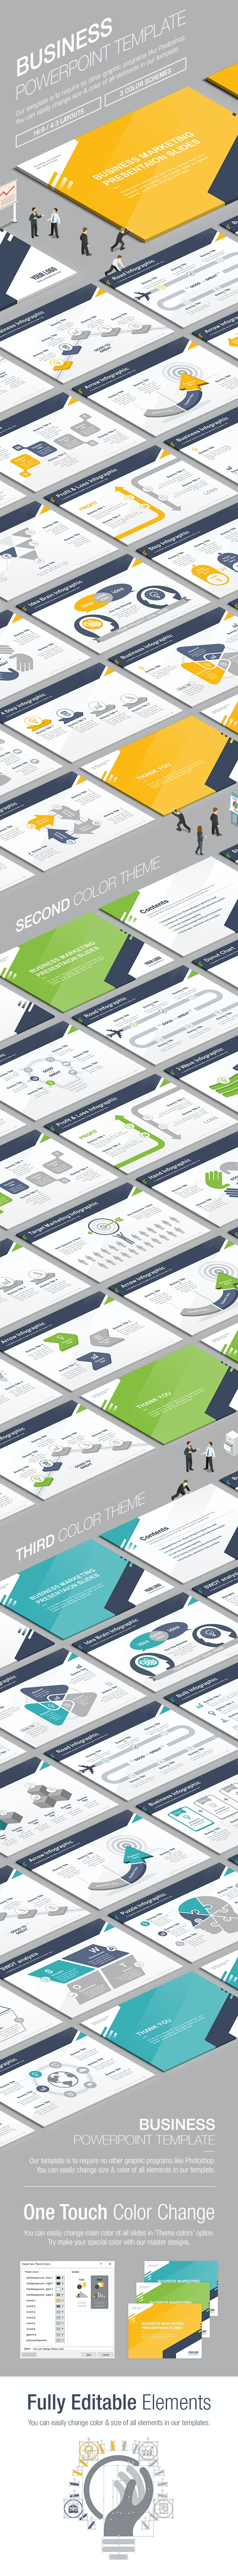 Business Powerpoint Template 009 - Business PowerPoint Templates